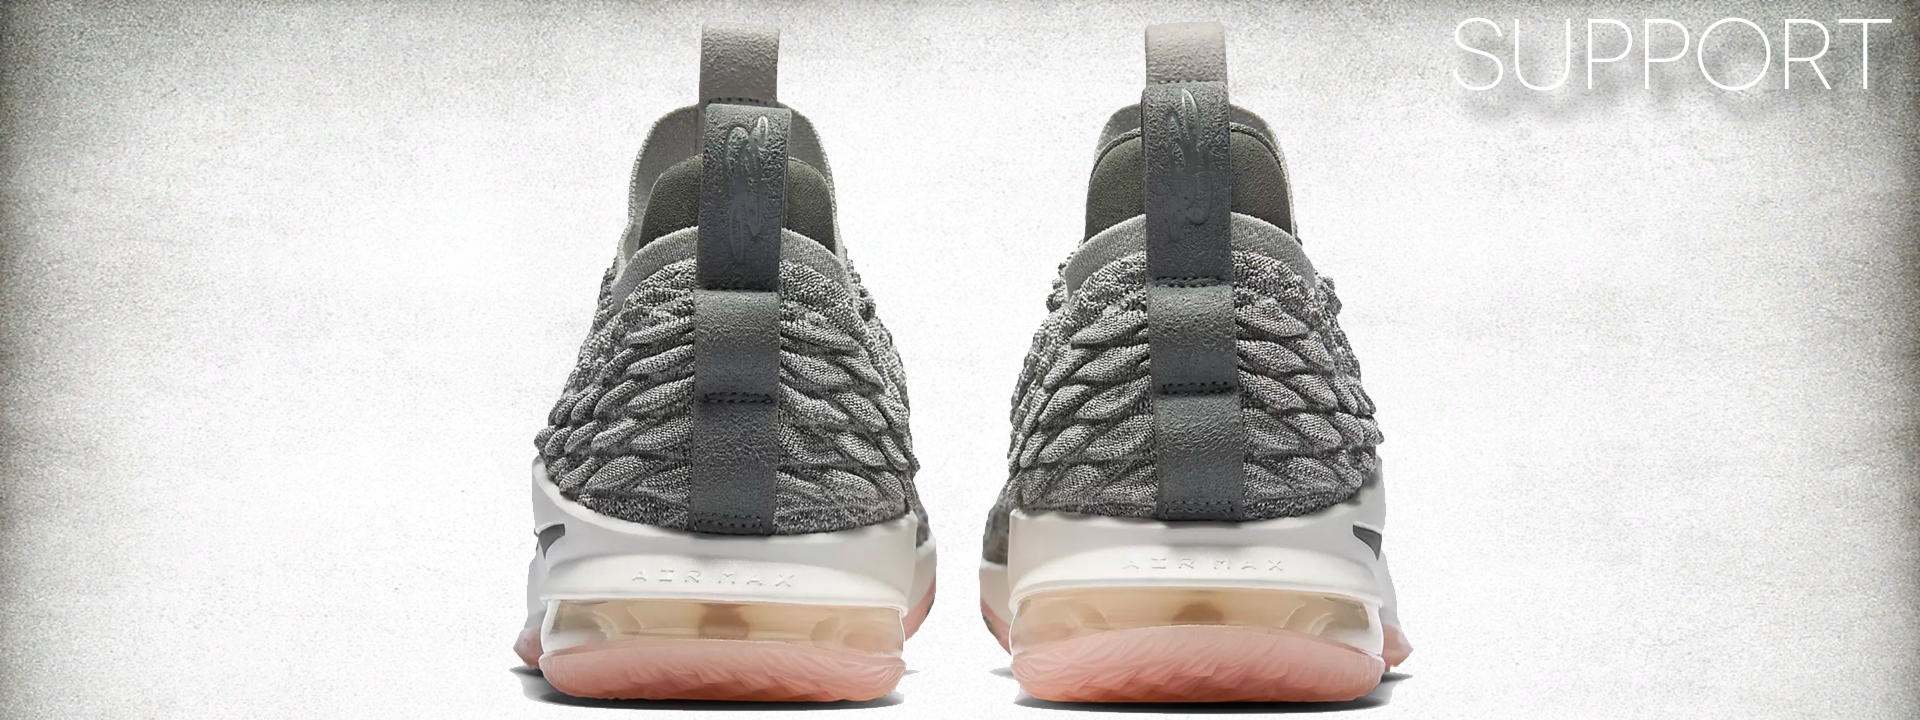 new products 04528 95a50 Nike LeBron 15 Low Performance Review - WearTesters